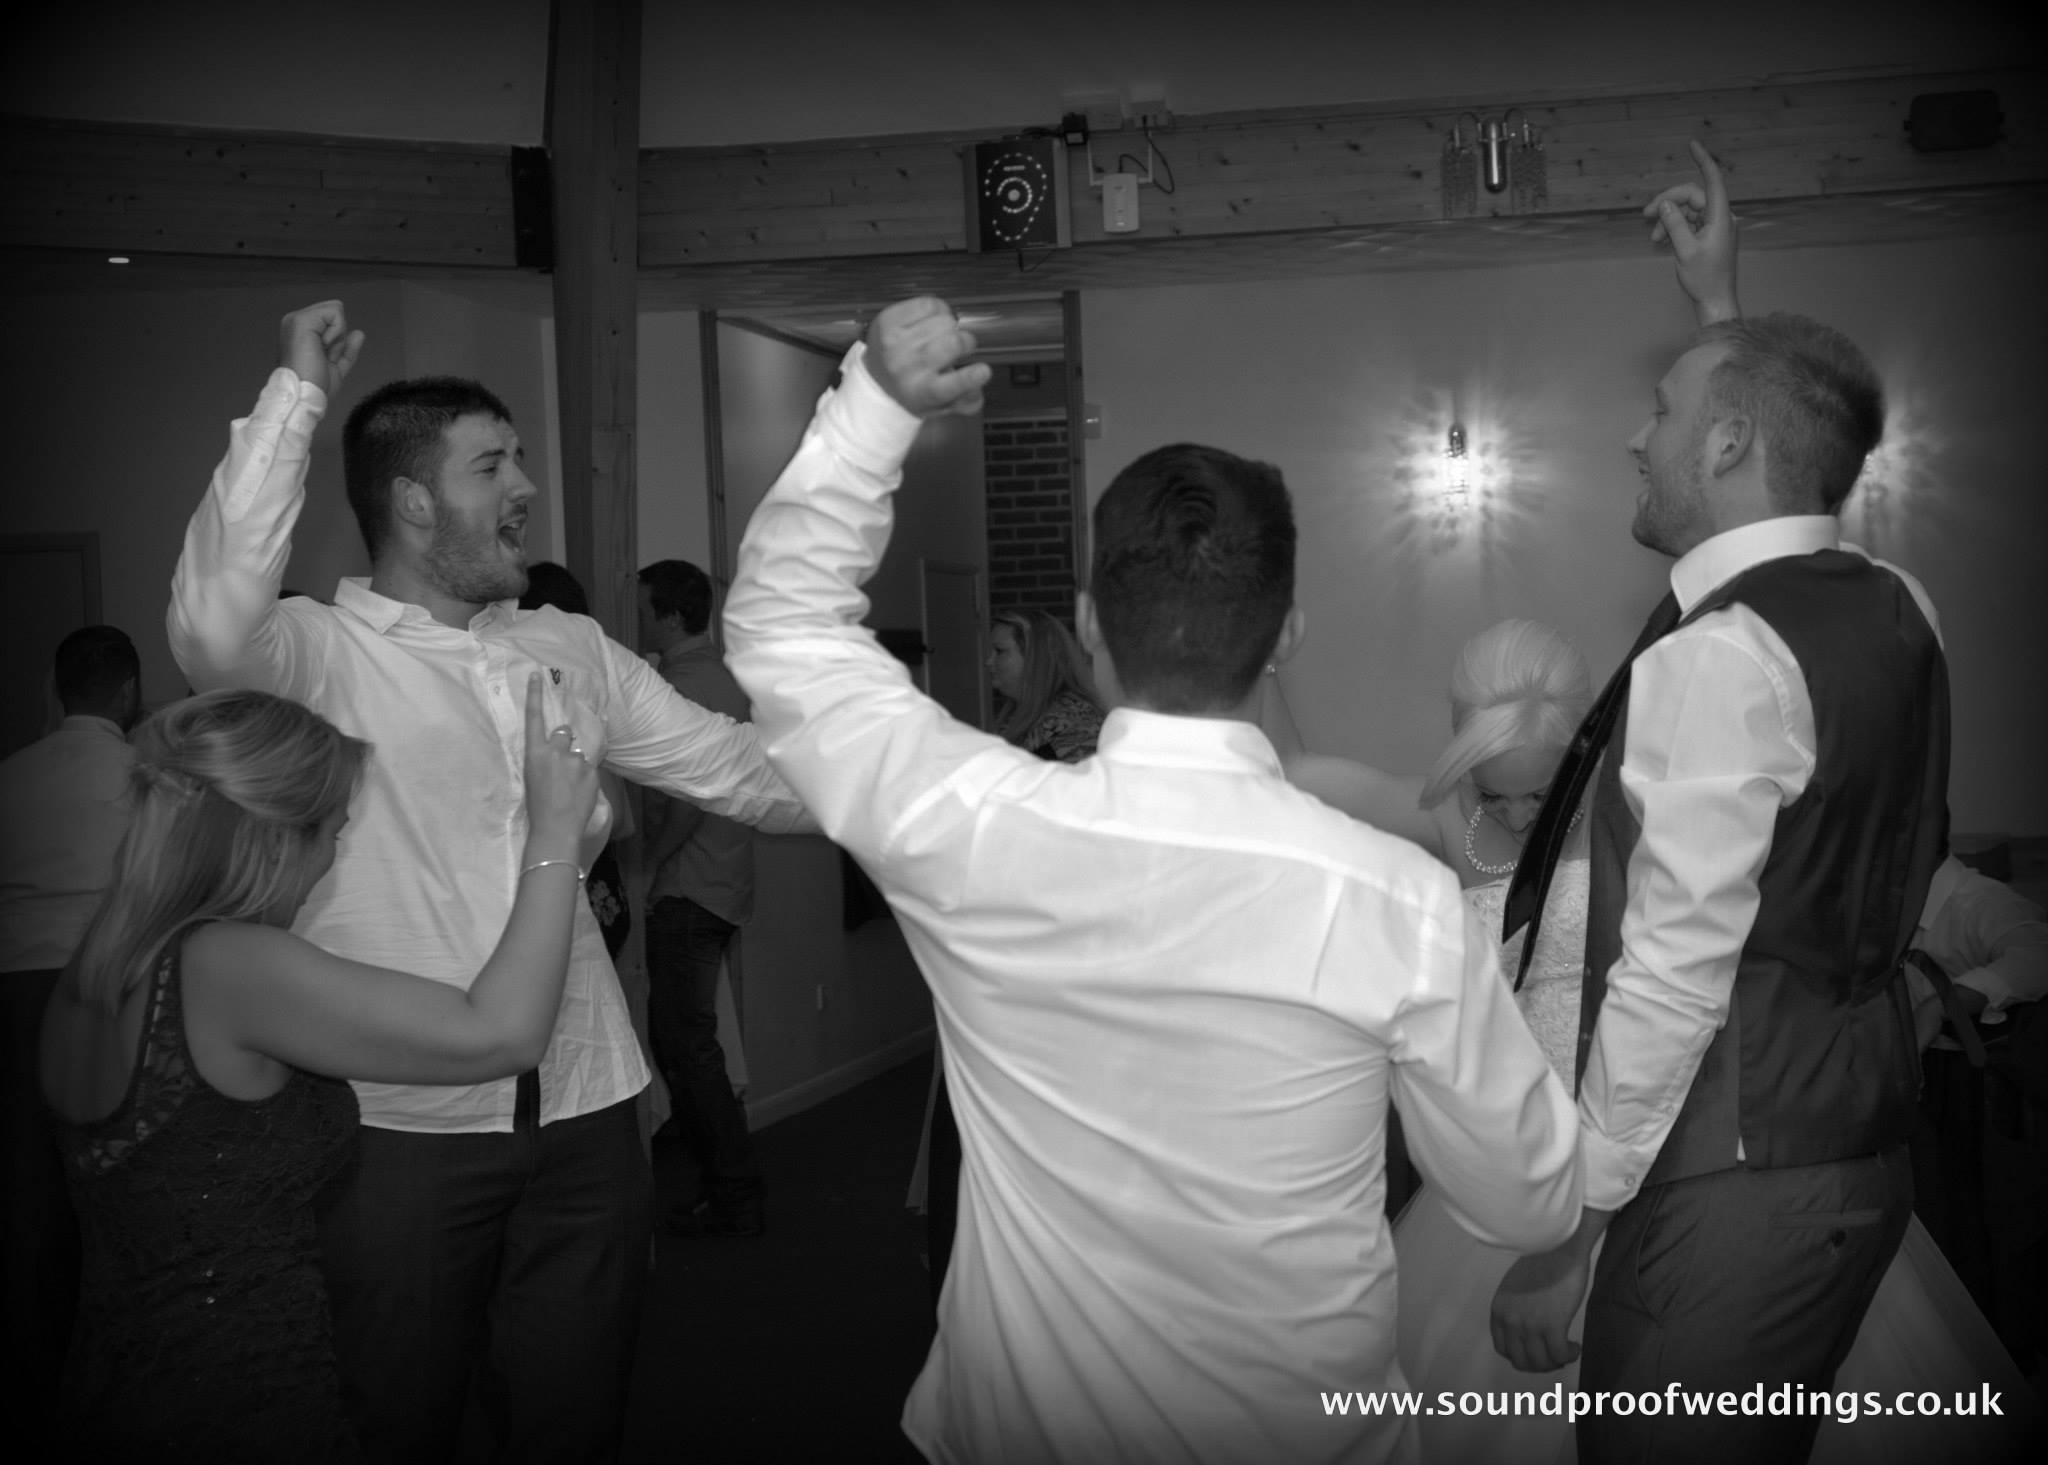 Chelsea & Matthew – Little Silver Country Hotel, Tenterden, 22/9/2013